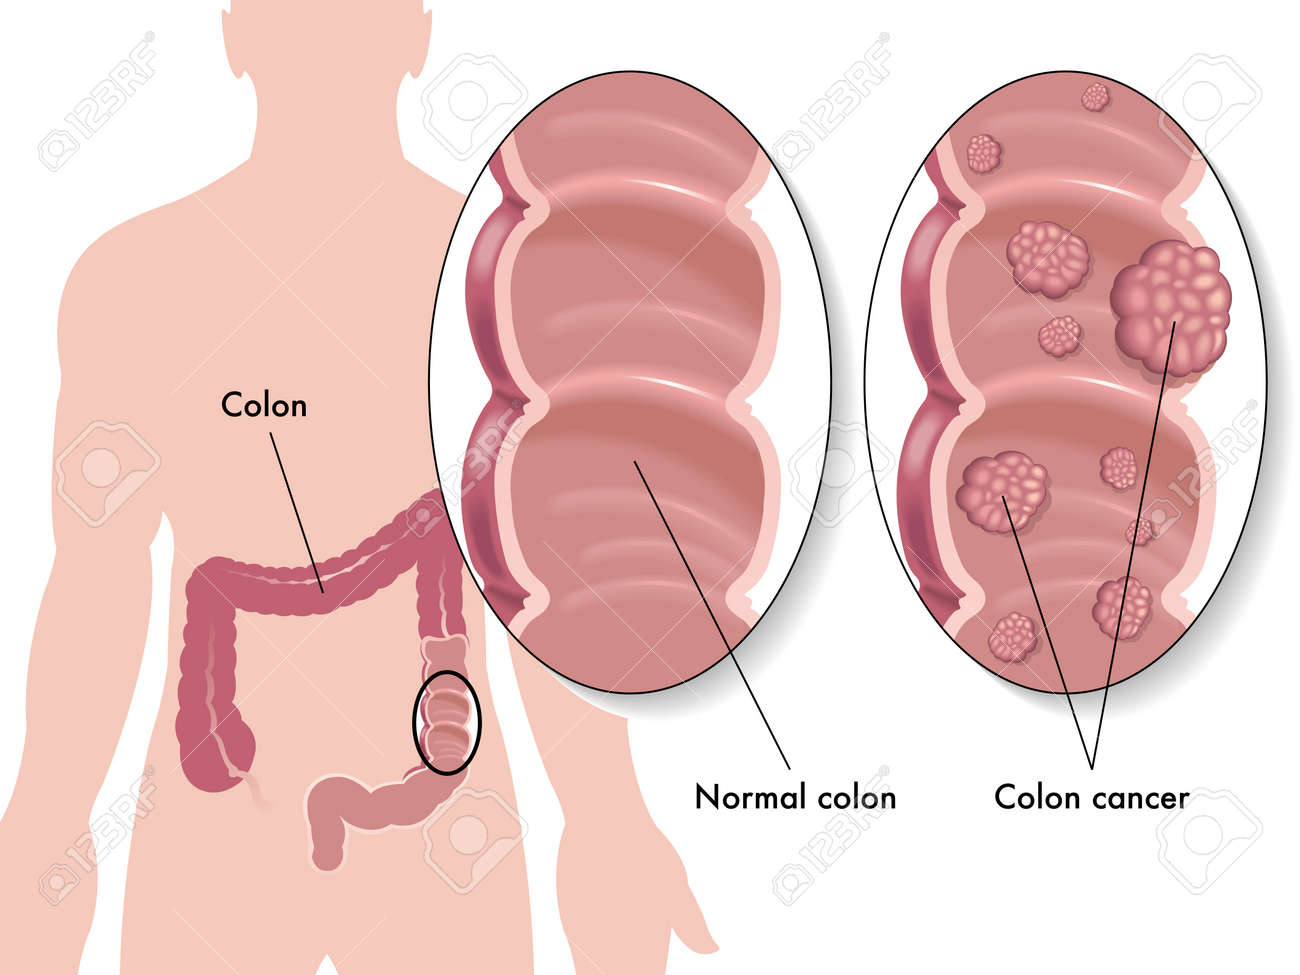 Colon Cancer Royalty Free Cliparts, Vectors, And Stock Illustration ...